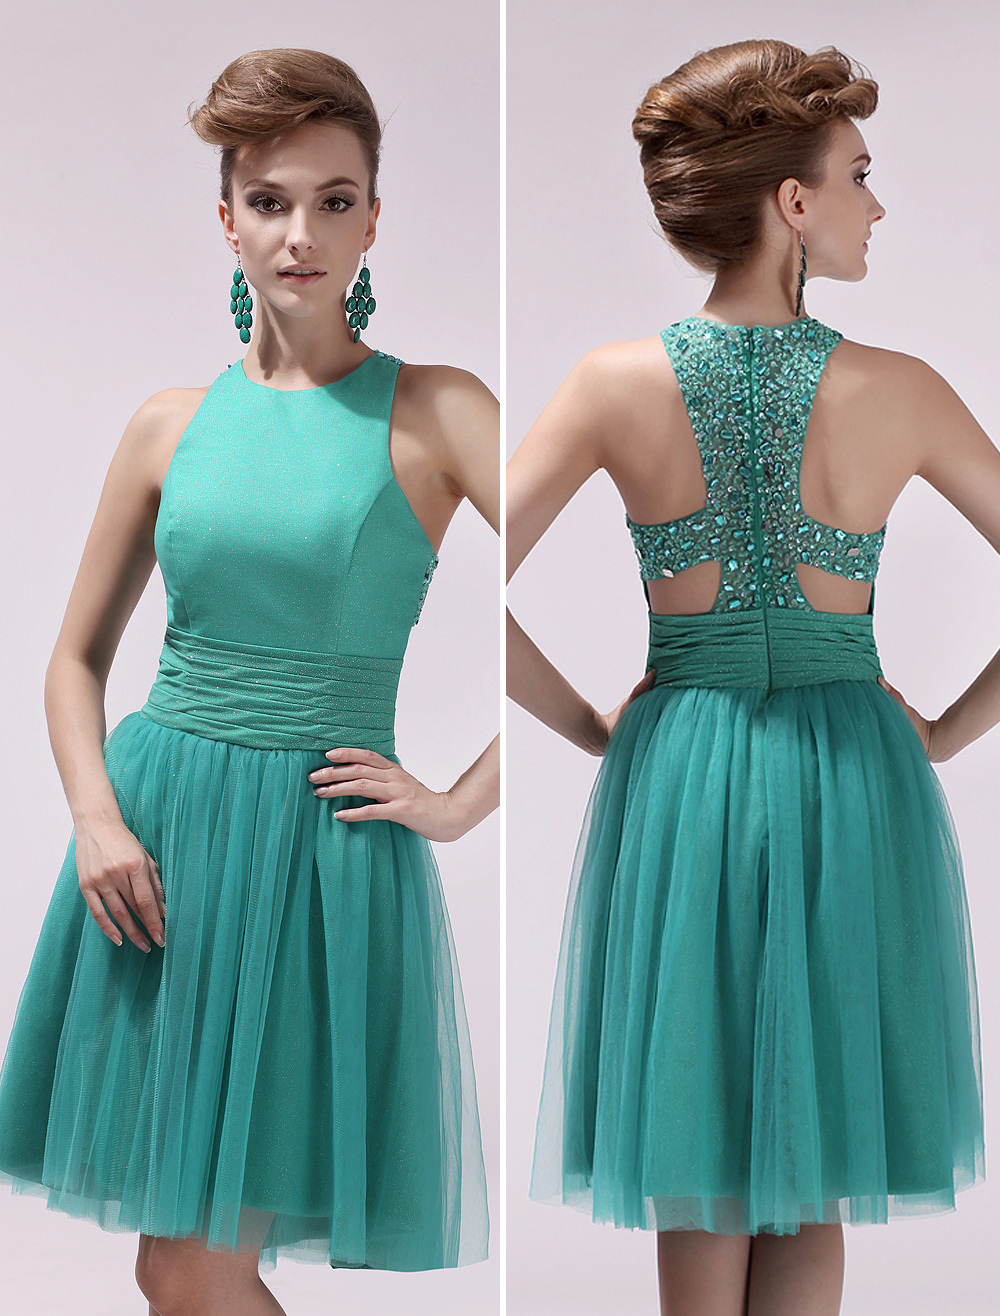 Tulle Prom Dress Blue Green Beaded Cocktail Dress Jewel Neck ...